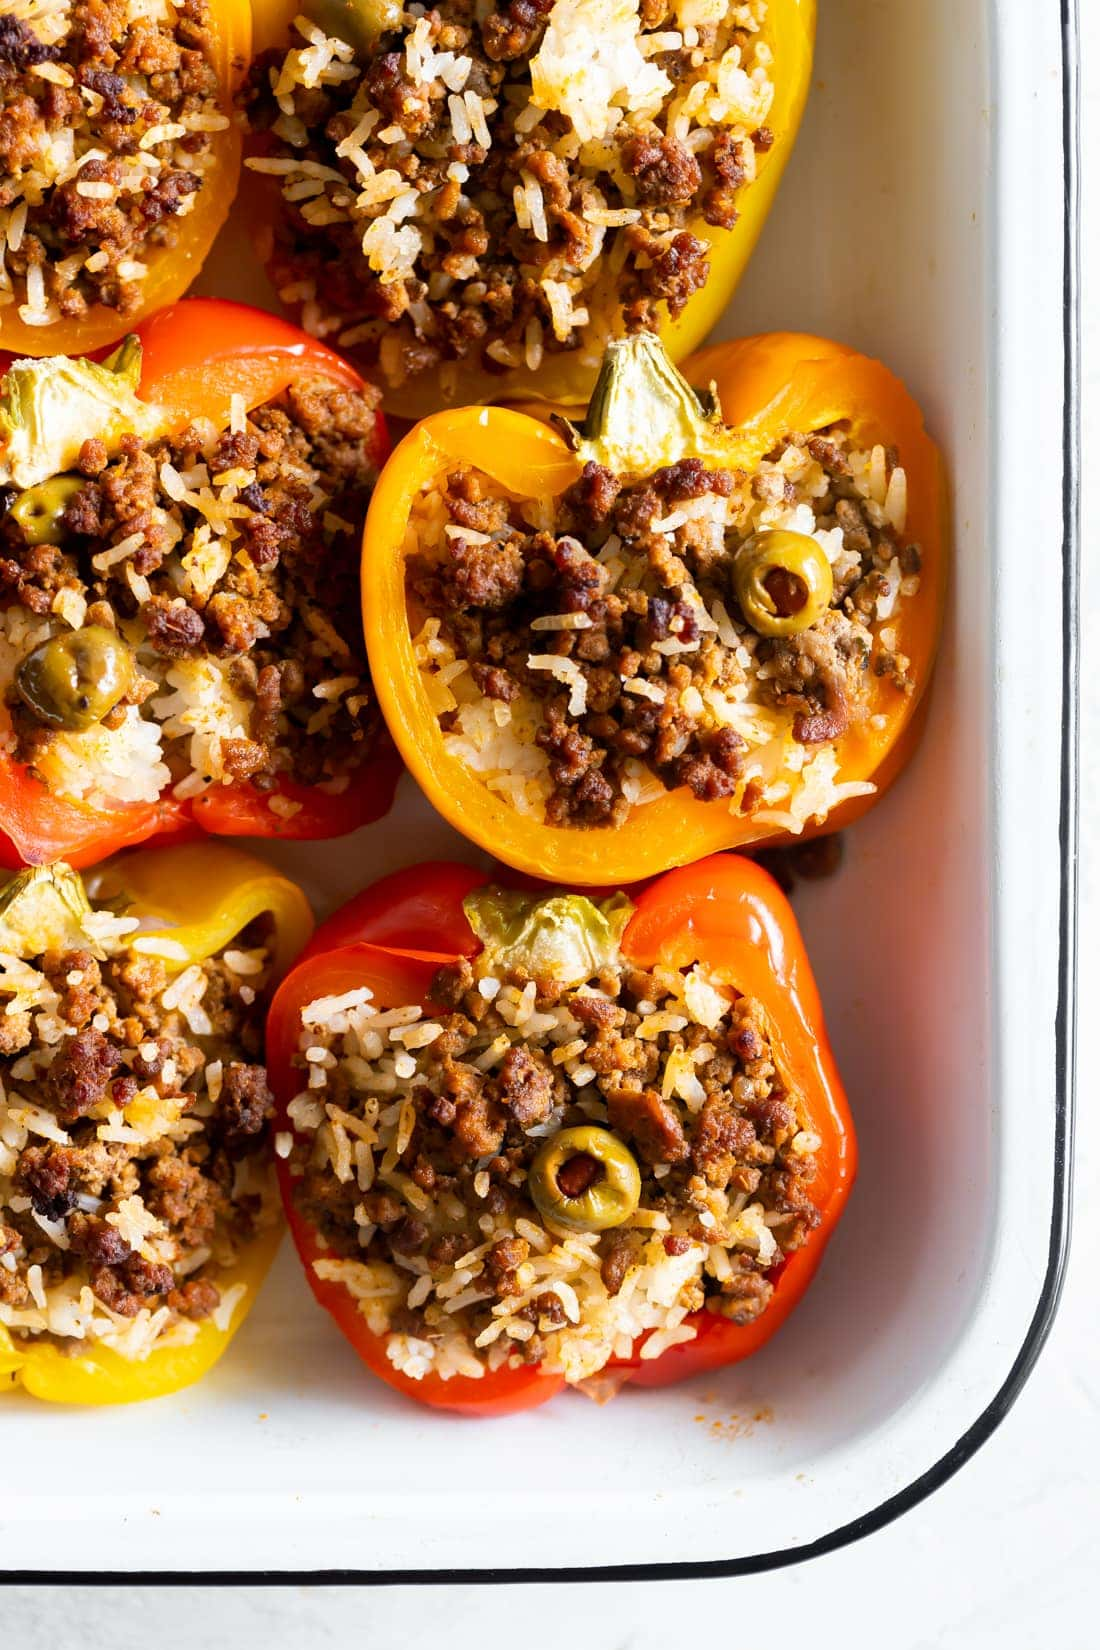 baking dish with cuban picadillo stuffed peppers